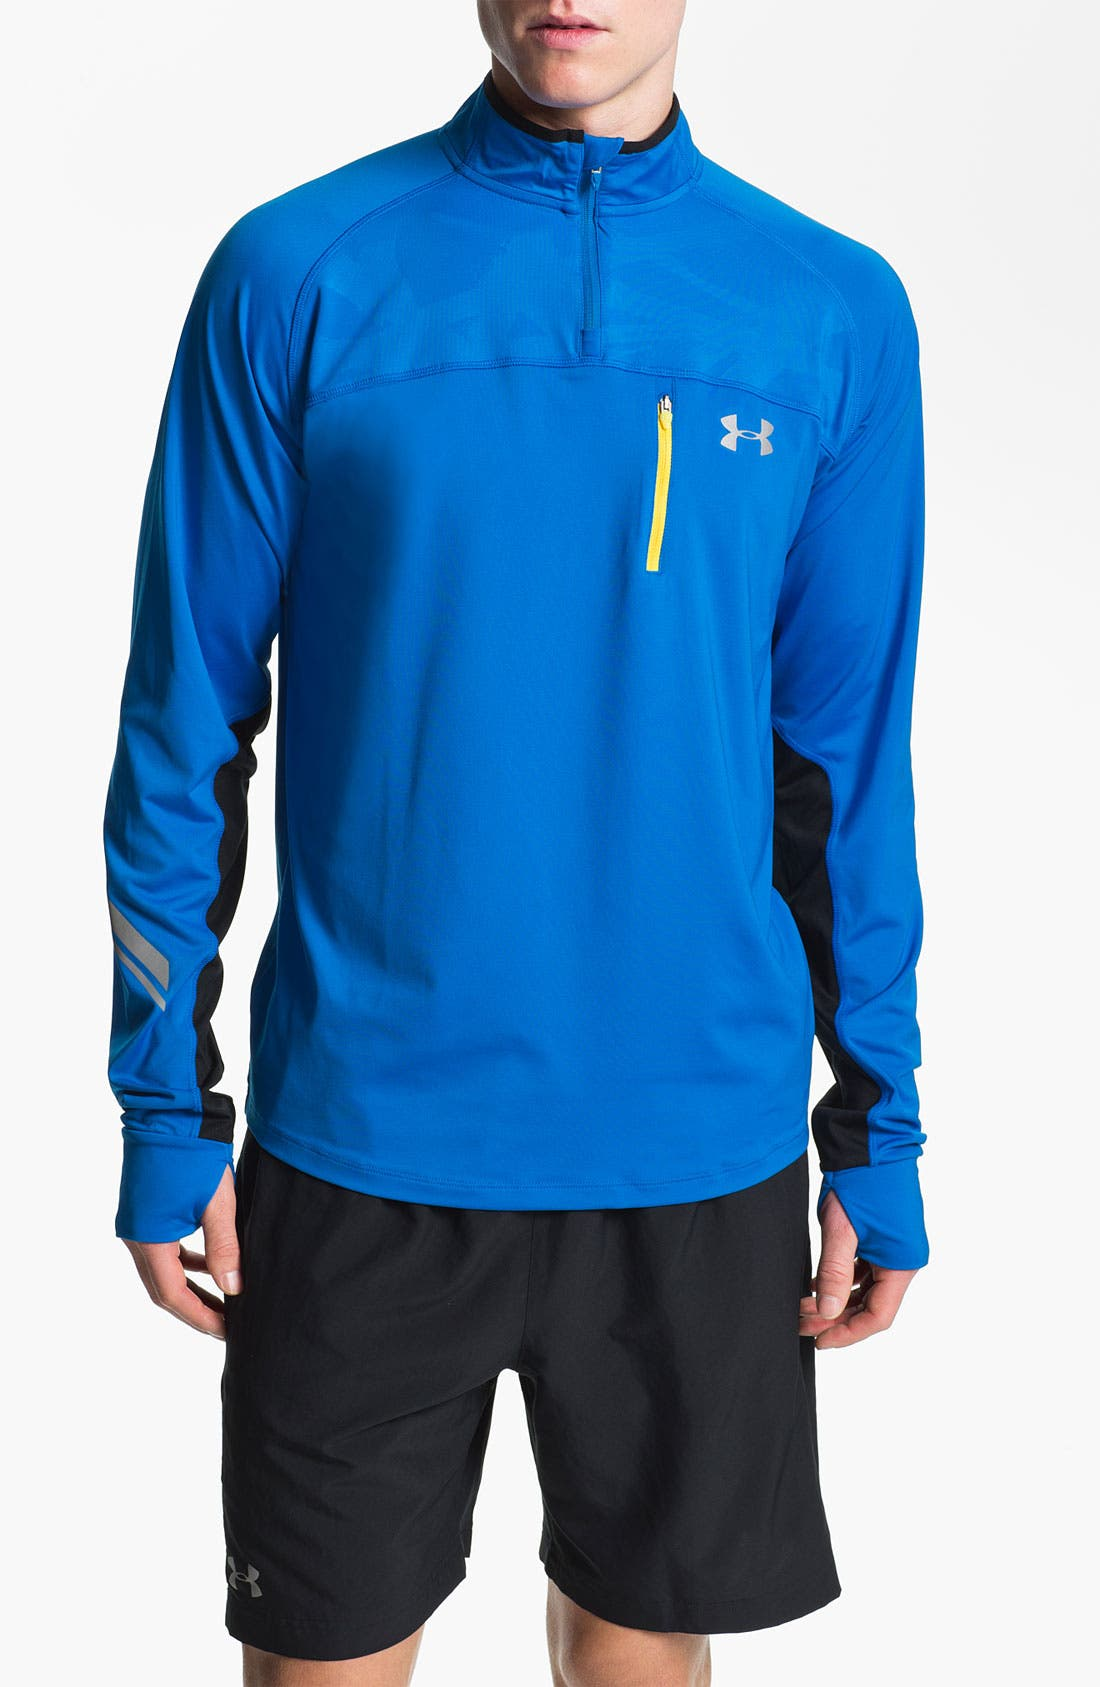 Main Image - Under Armour 'Imminent Run' Quarter Zip Pullover